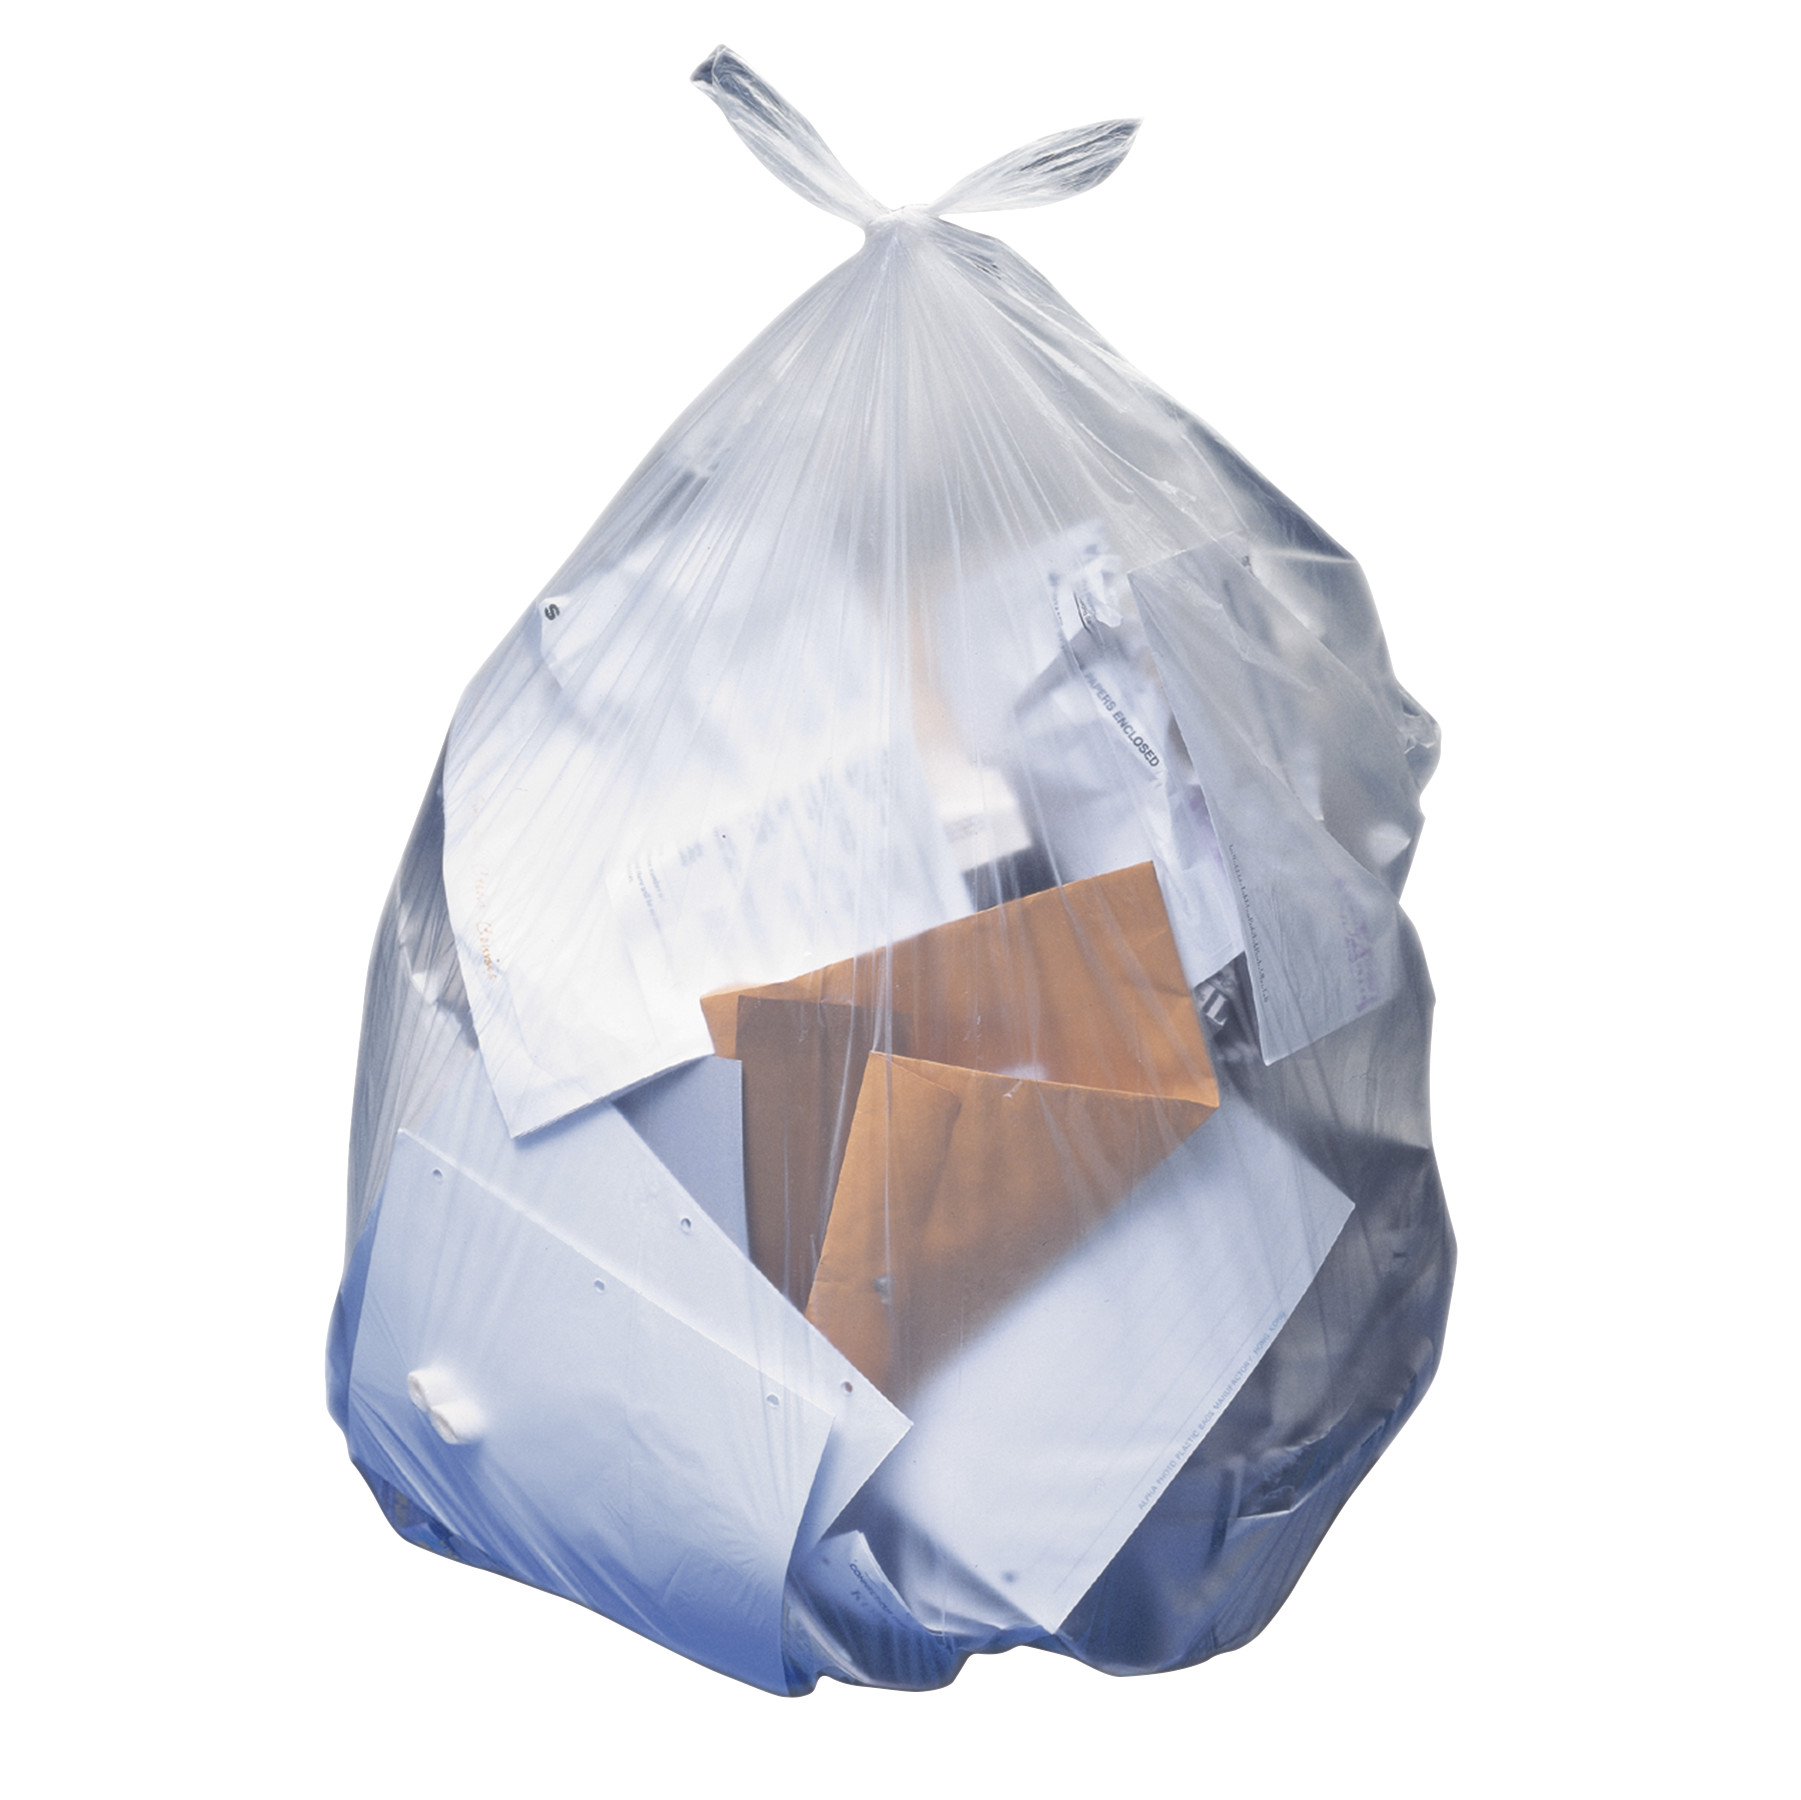 "AccuFit Trash Bags, 23gal, 0.9mil, Clear, 28"" x 45"", 50/Box"